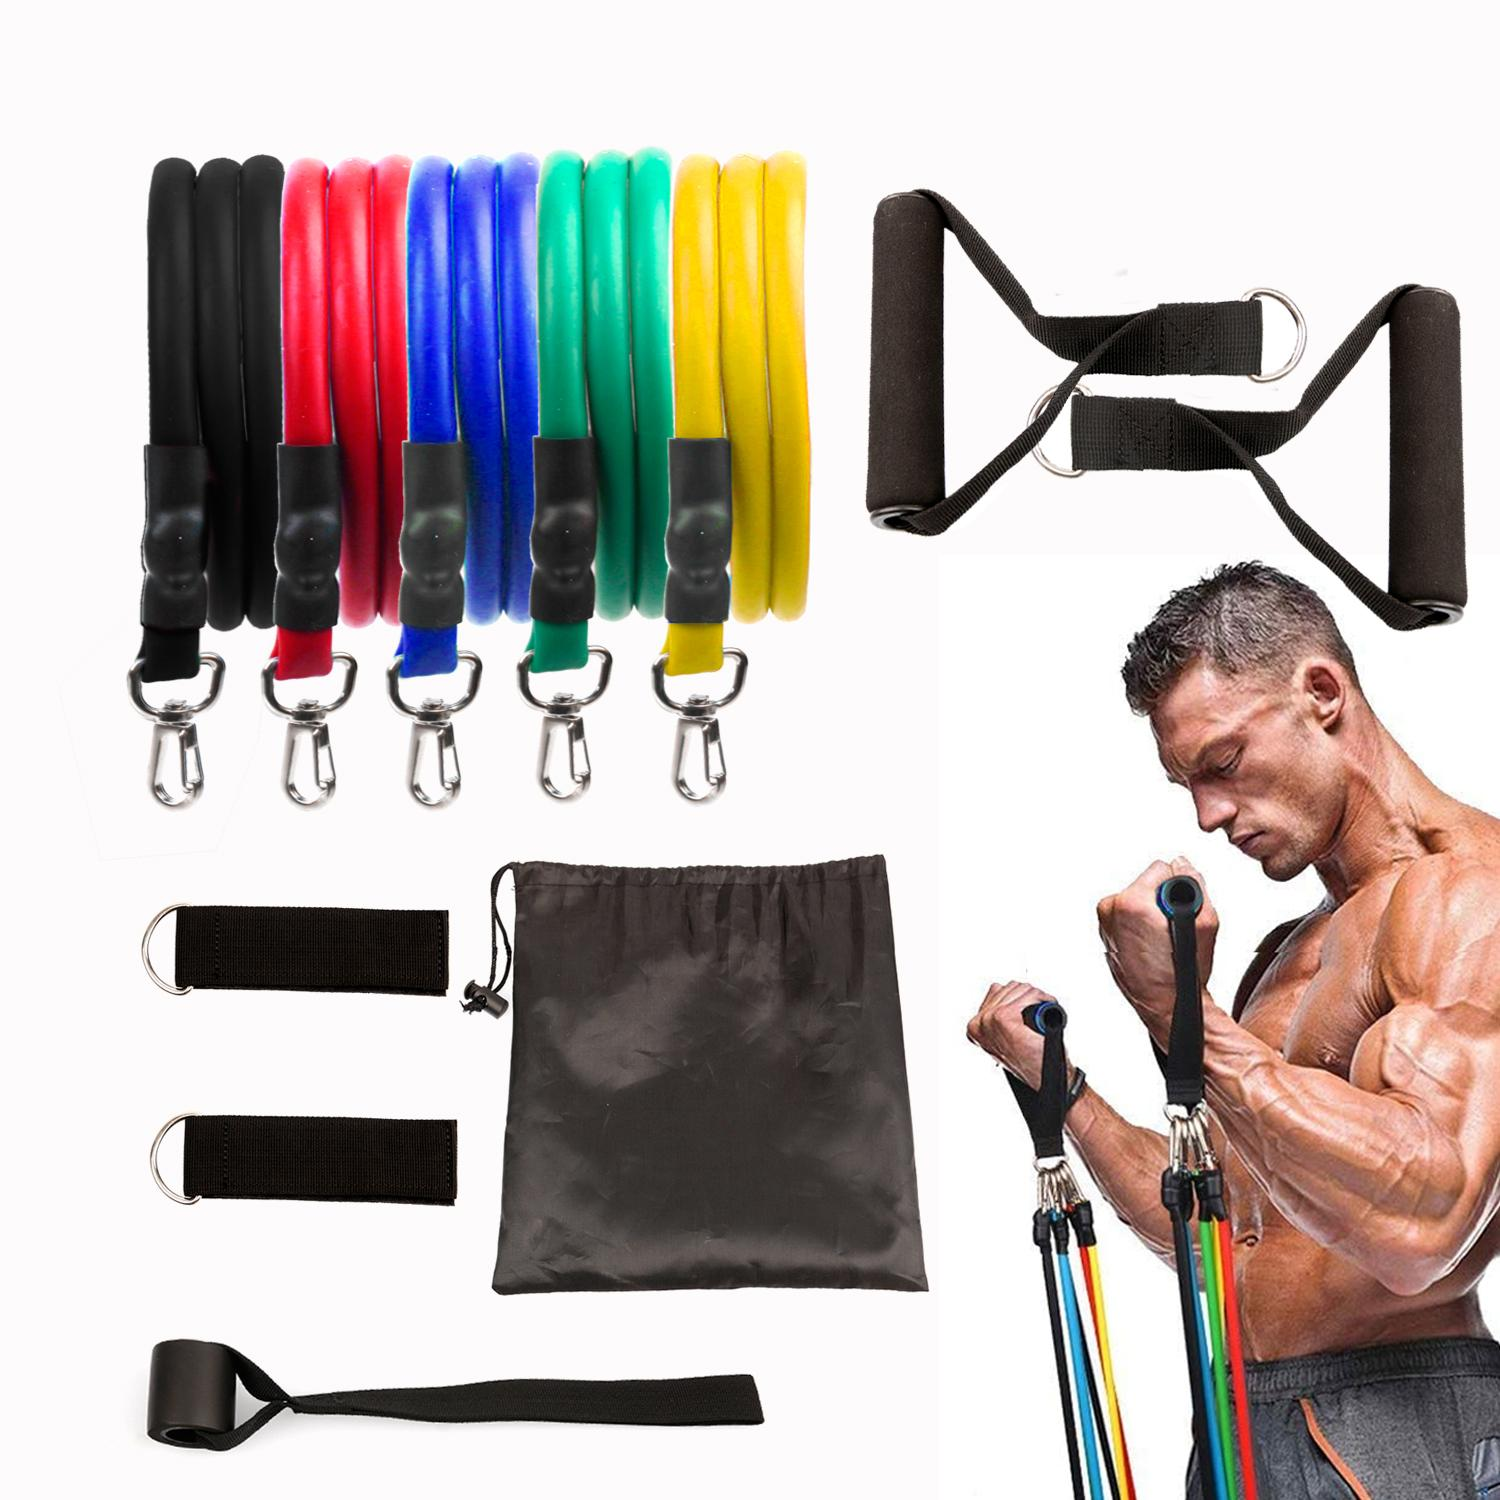 11pcs / set fune fitness Esercizi fasce di resistenza del lattice Tubi Pedale Excerciser Training Body Workout elastico Yoga Banda